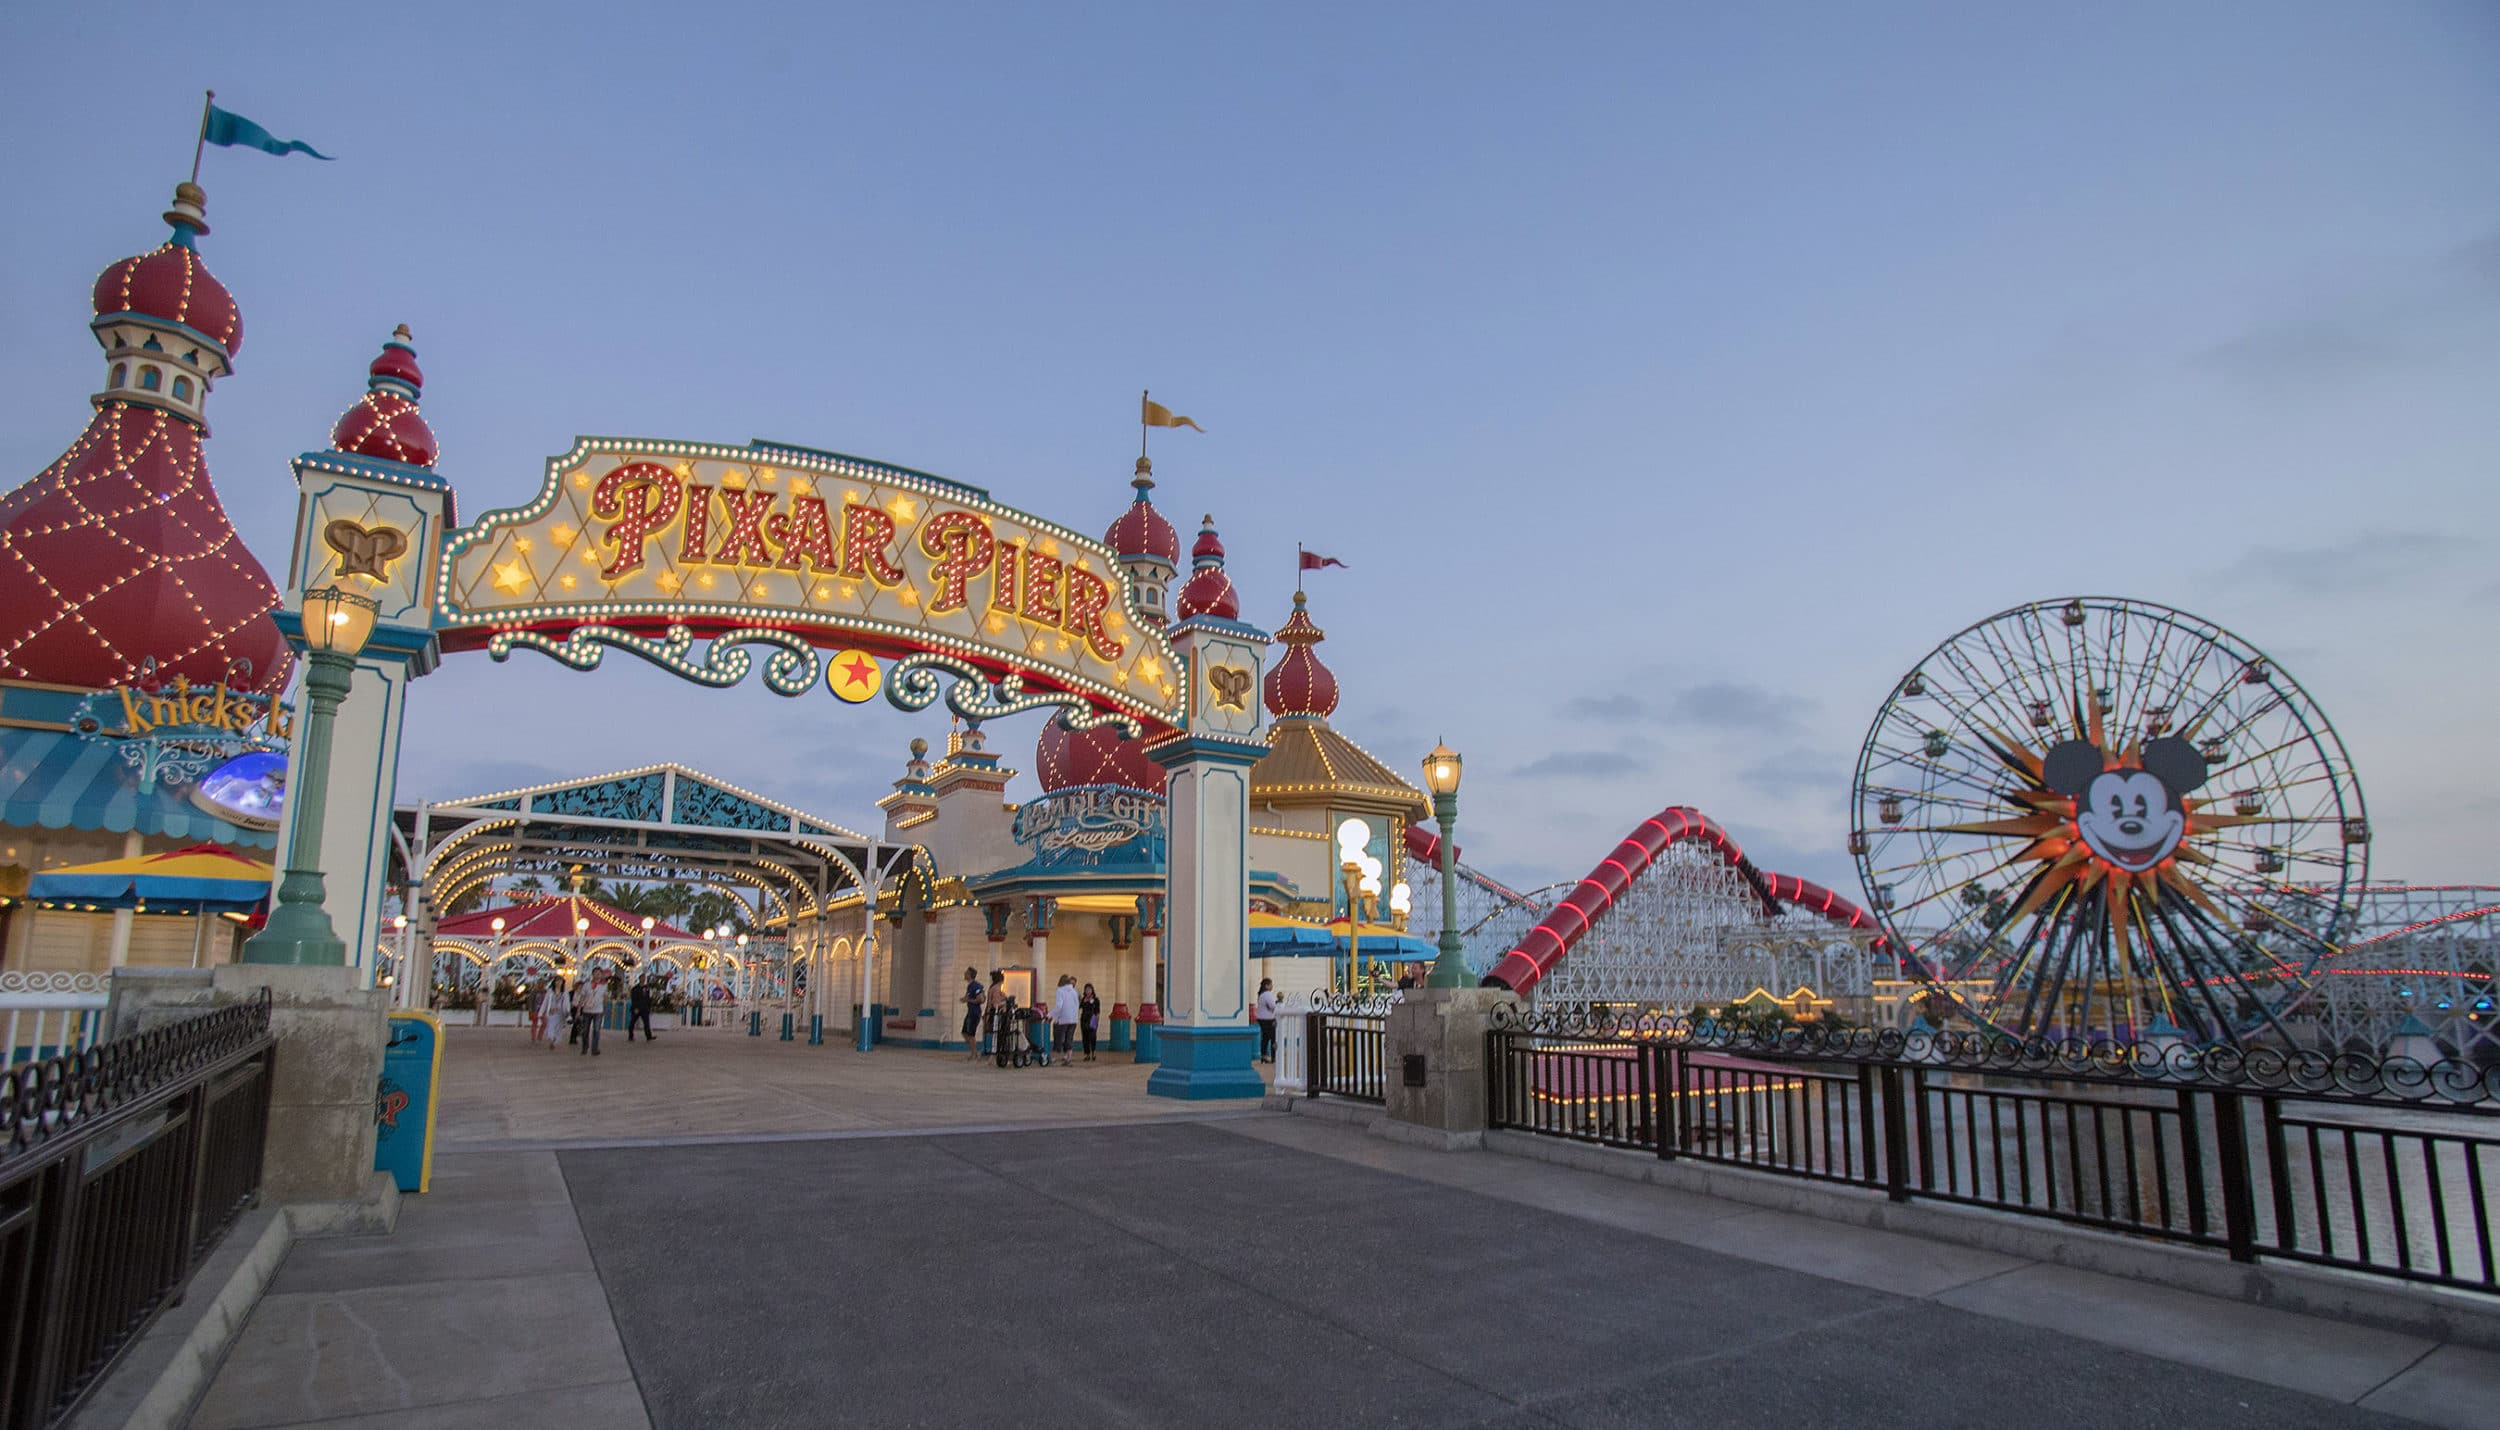 A guide to visiting Disney California Adventure